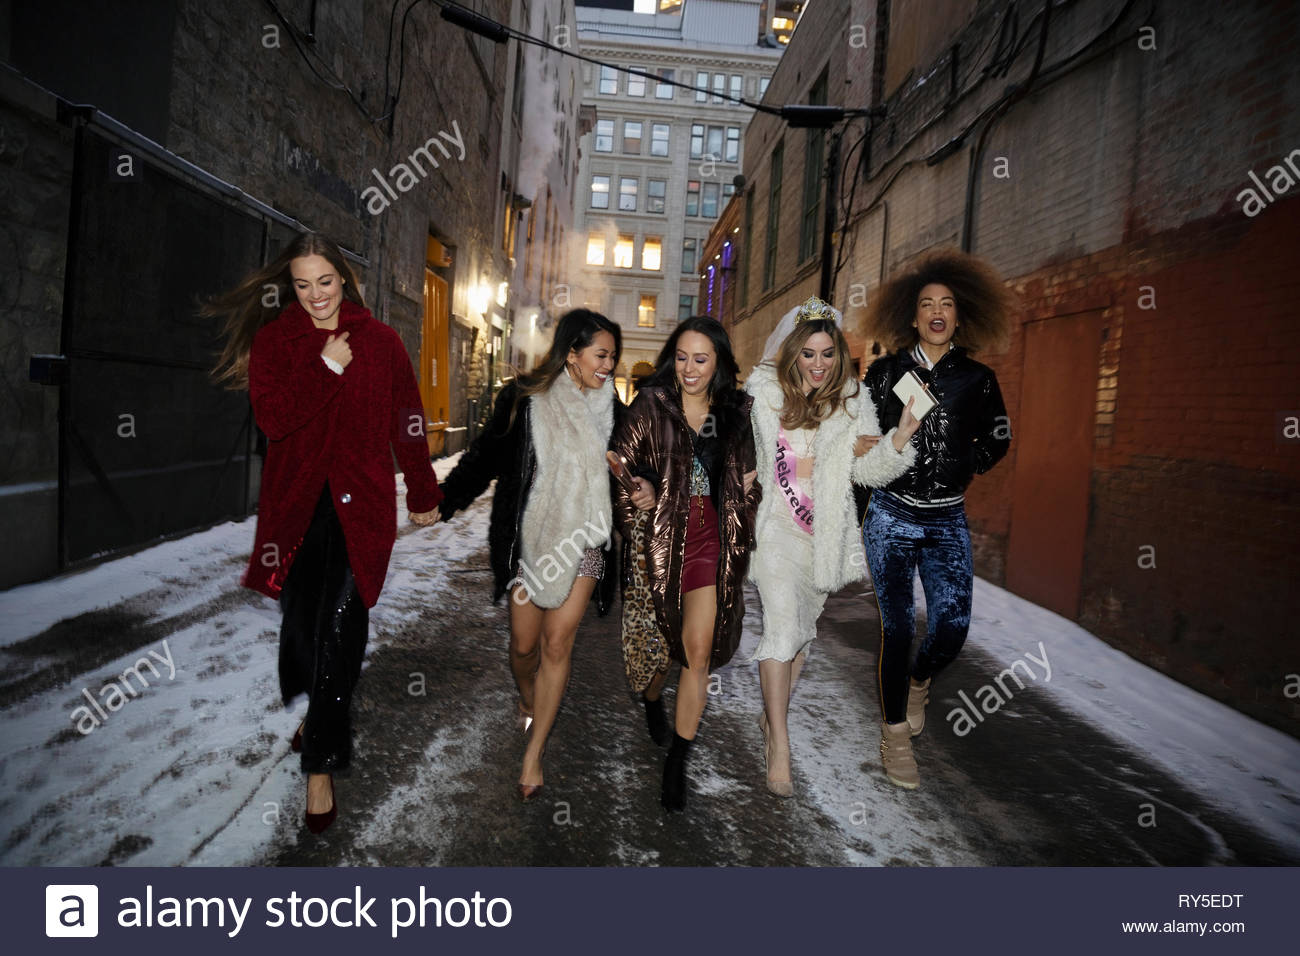 Bachelorette and friends walking along snowy urban alley - Stock Image